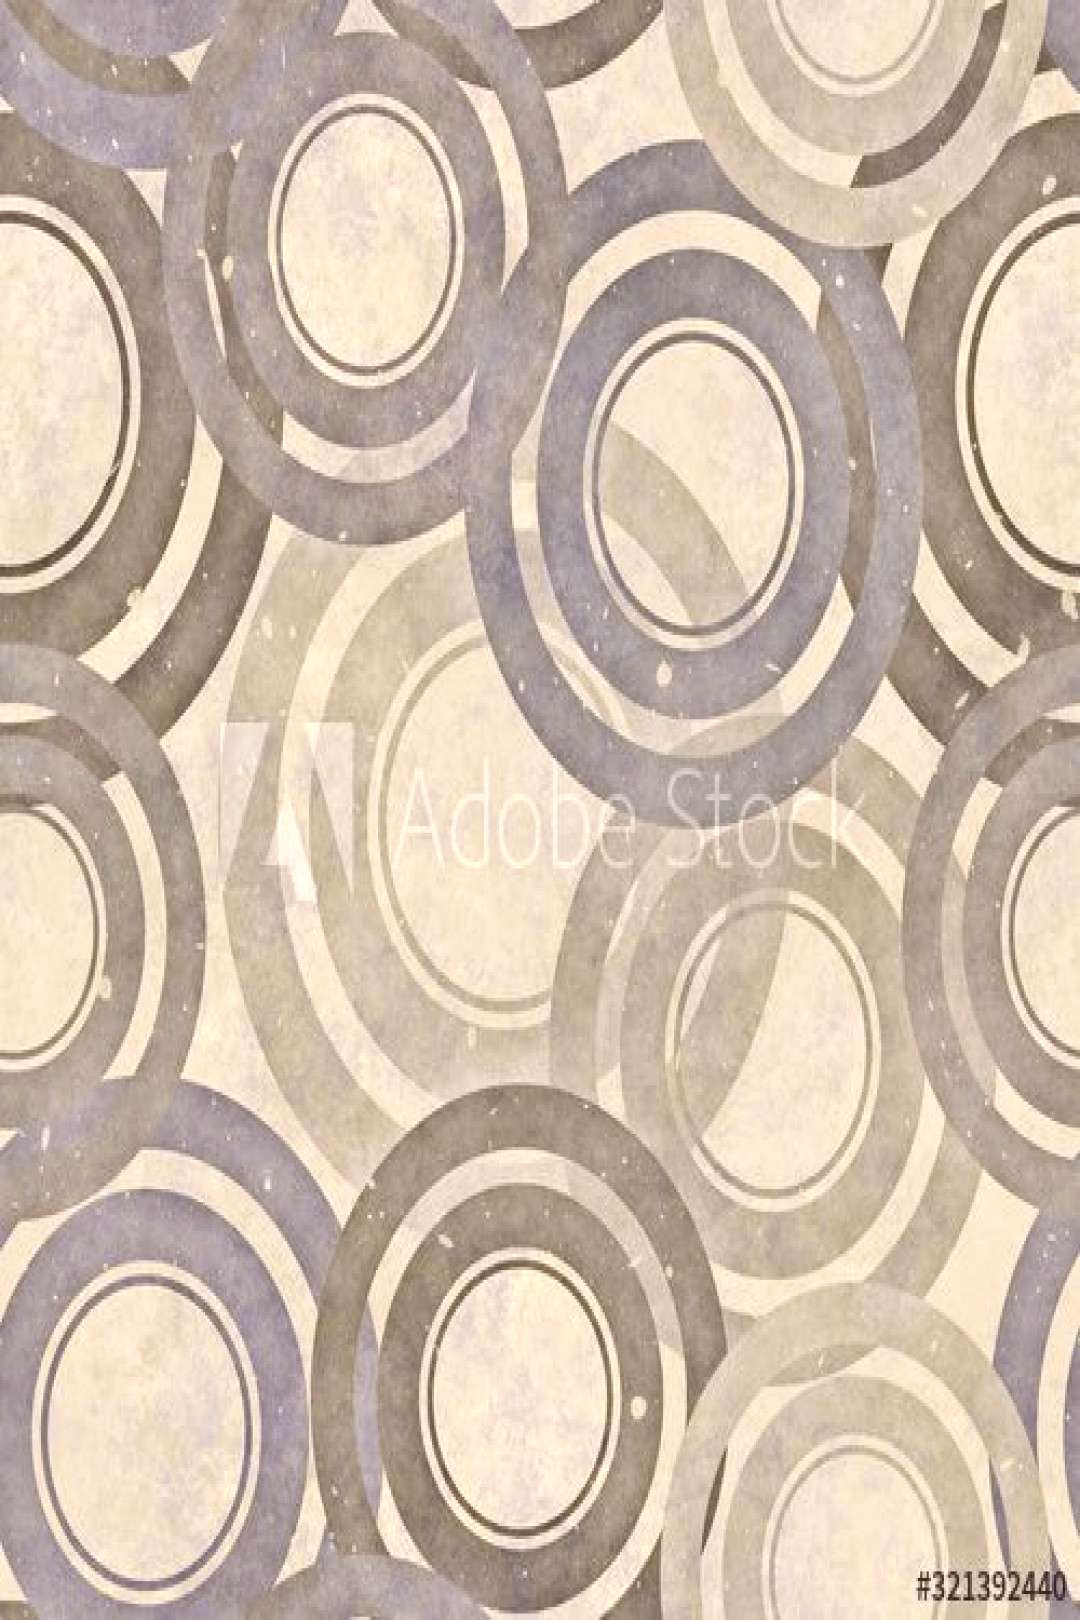 Grunge, circles and vintage color with pattern, seamless texture, 3d illustration ,